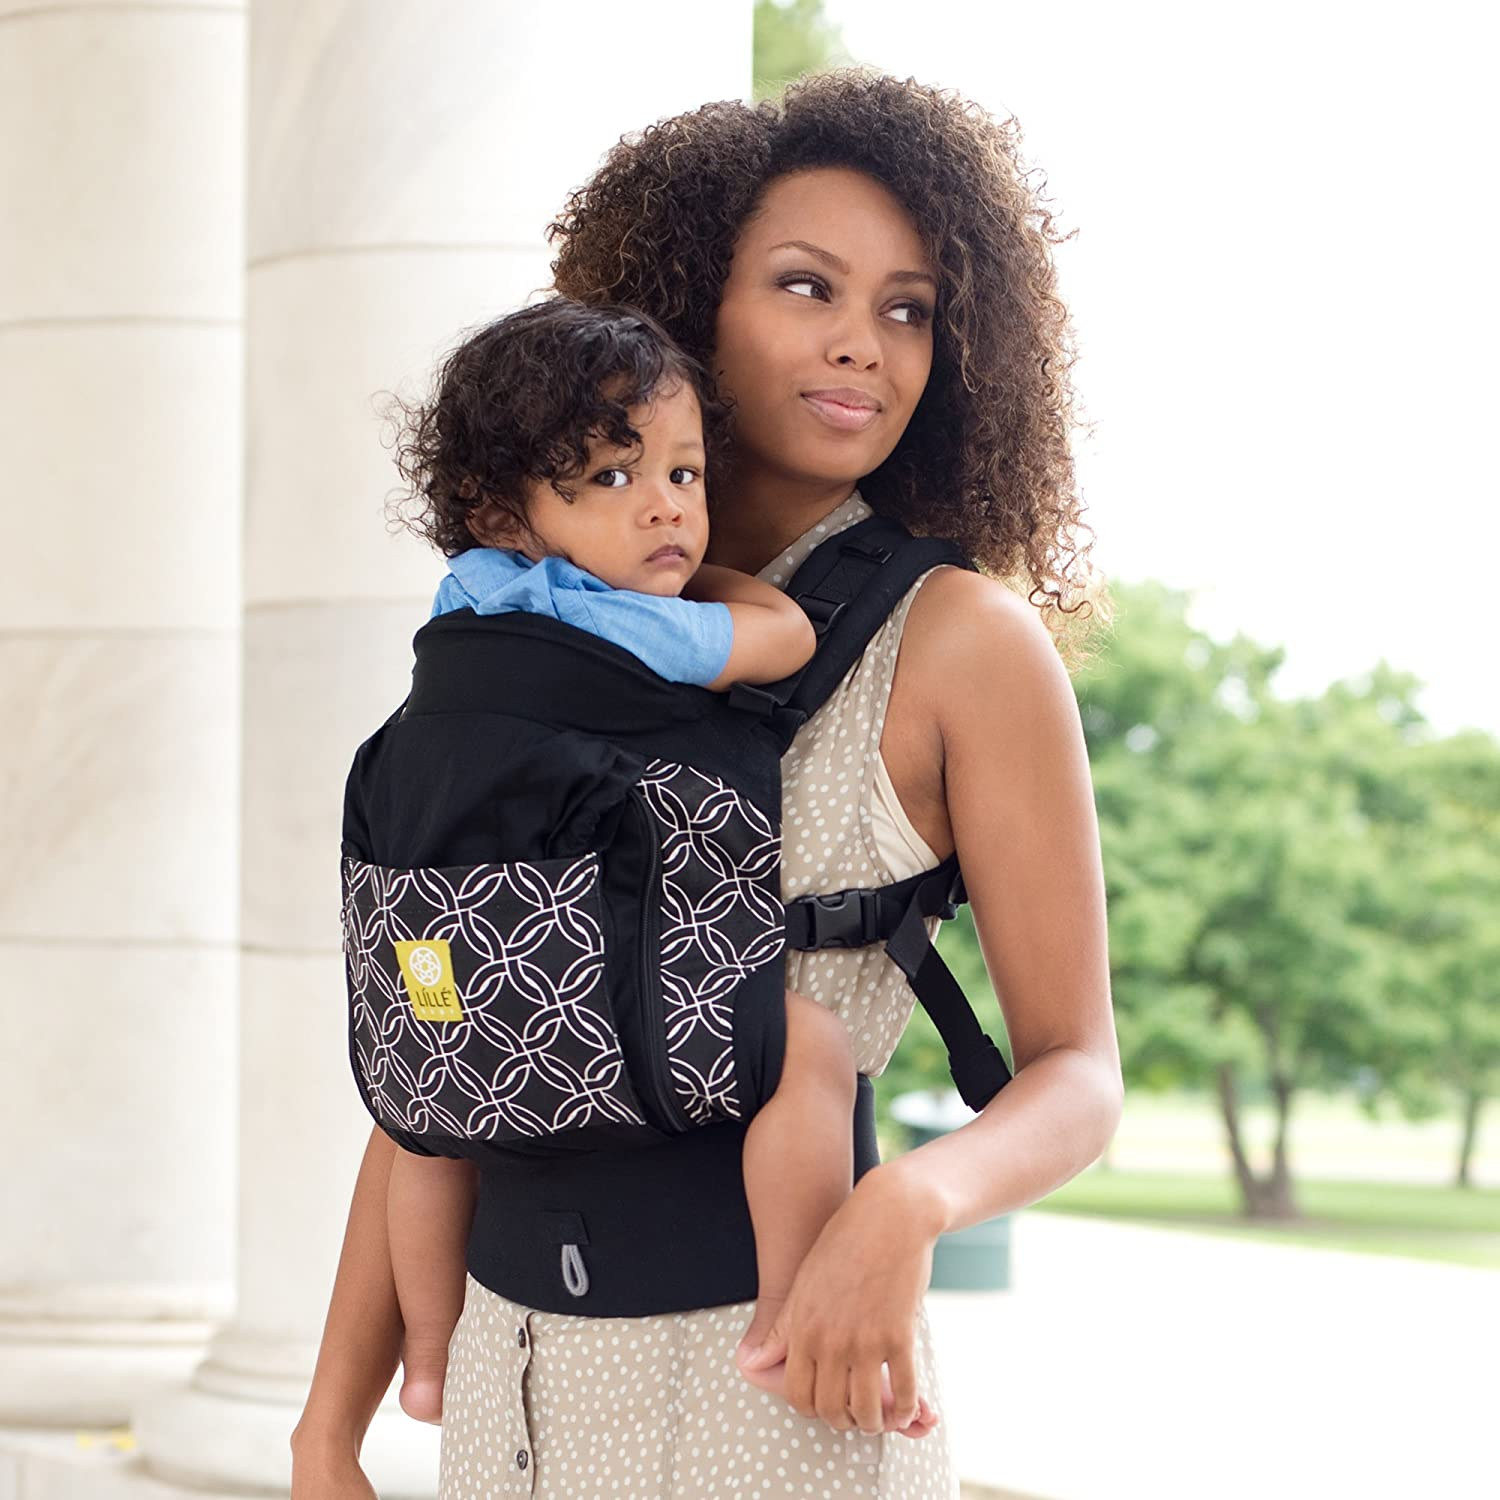 f7a9f94c26d Amazon.com   LILLEbaby 4 in 1 ESSENTIALS All Seasons Baby Carrier - Black  w Circle of Love   Baby